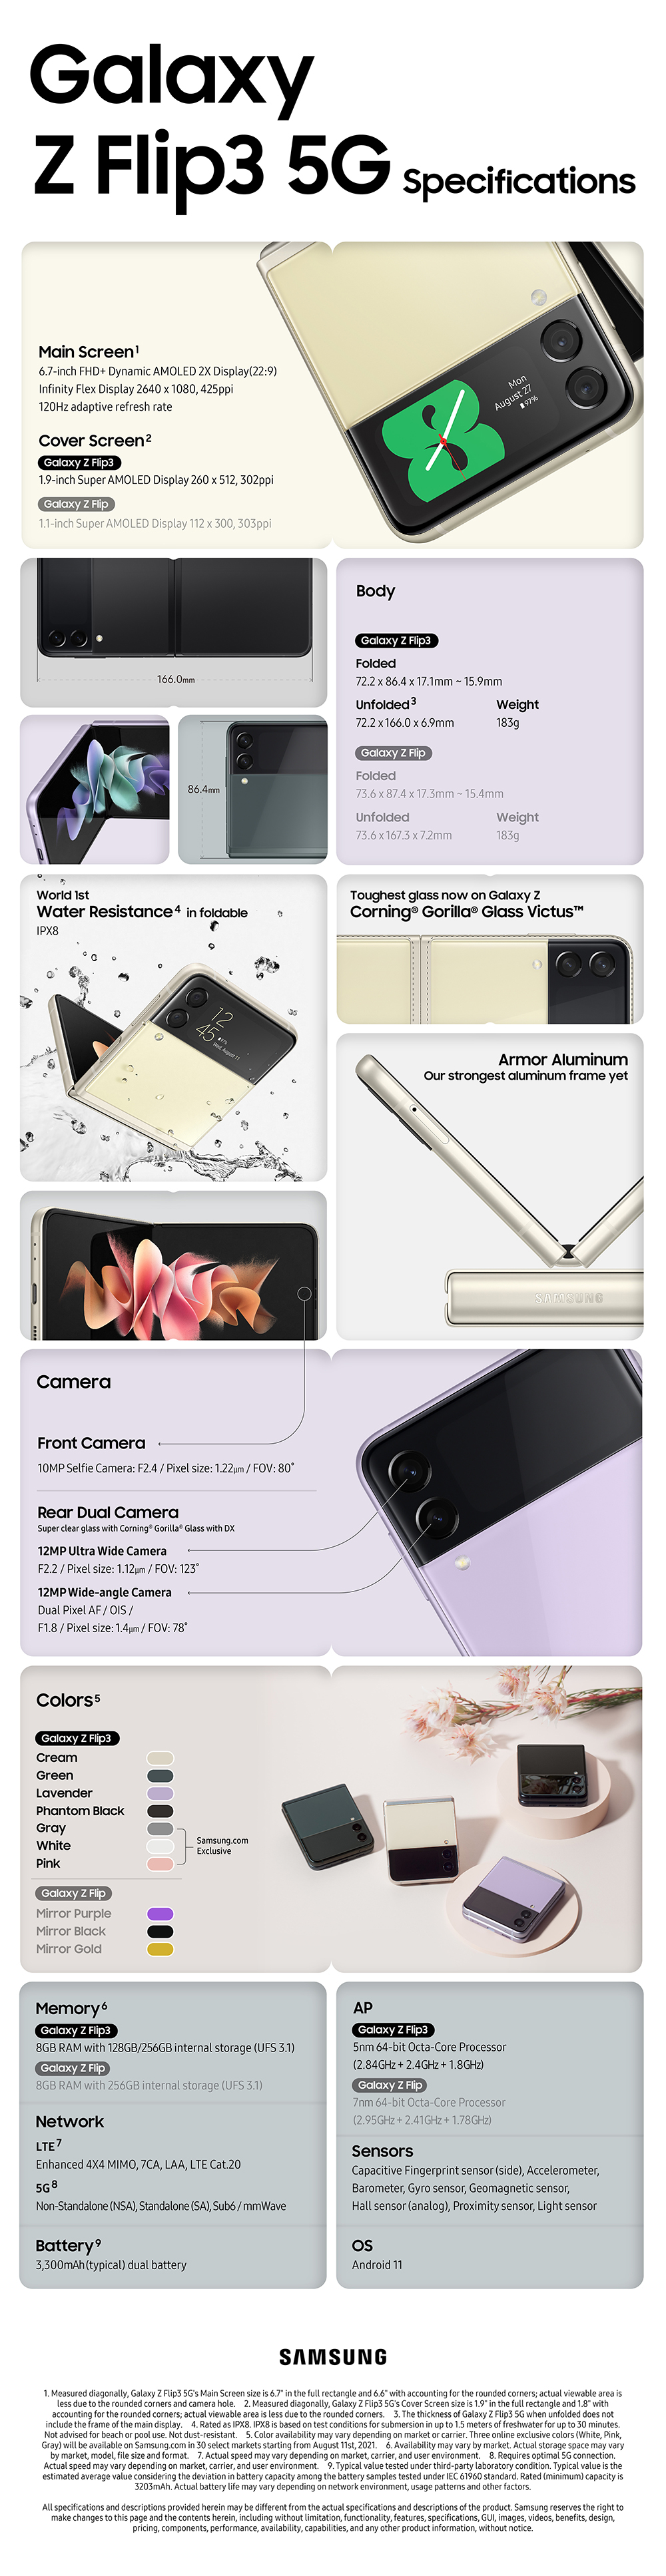 01 galaxy zflip3 5g product specifications - SAMSUNG UNVEILS GALAXY Z Flip 3 - CHECKOUT THE SPECS!